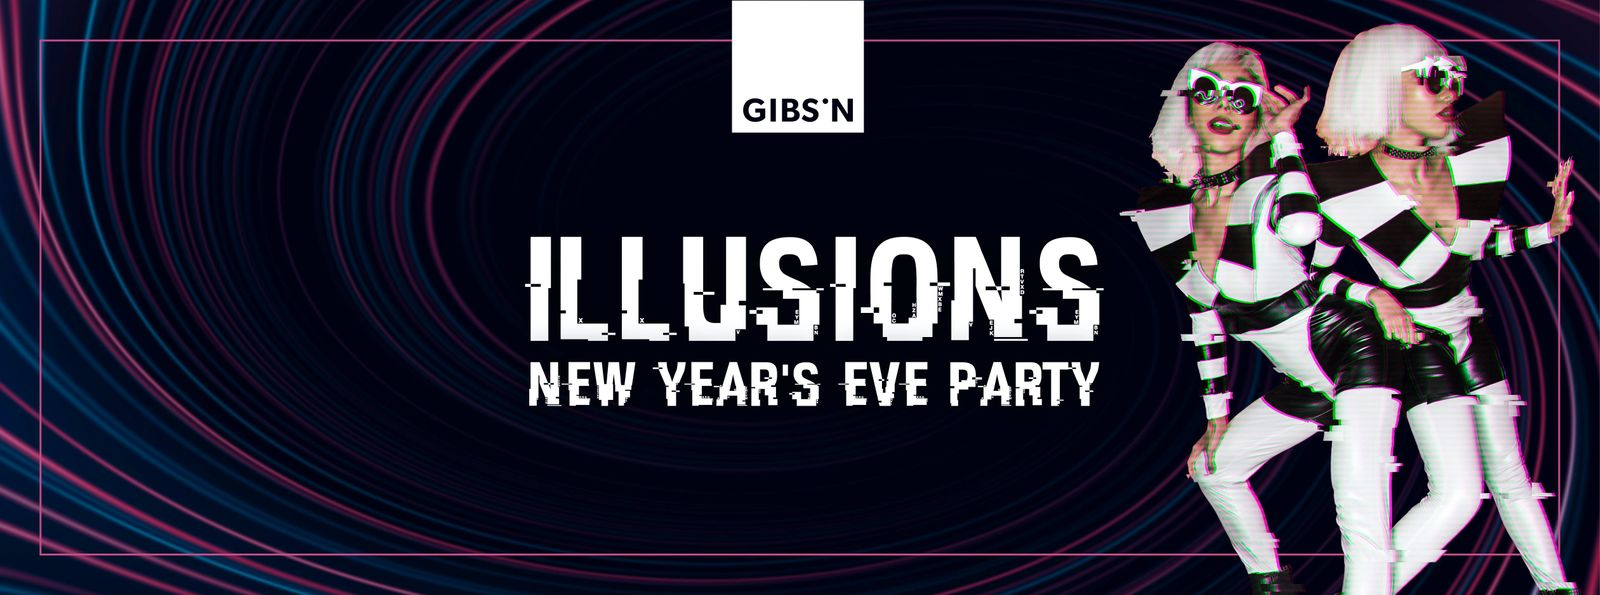 ILLUSIONS - New Year's Special